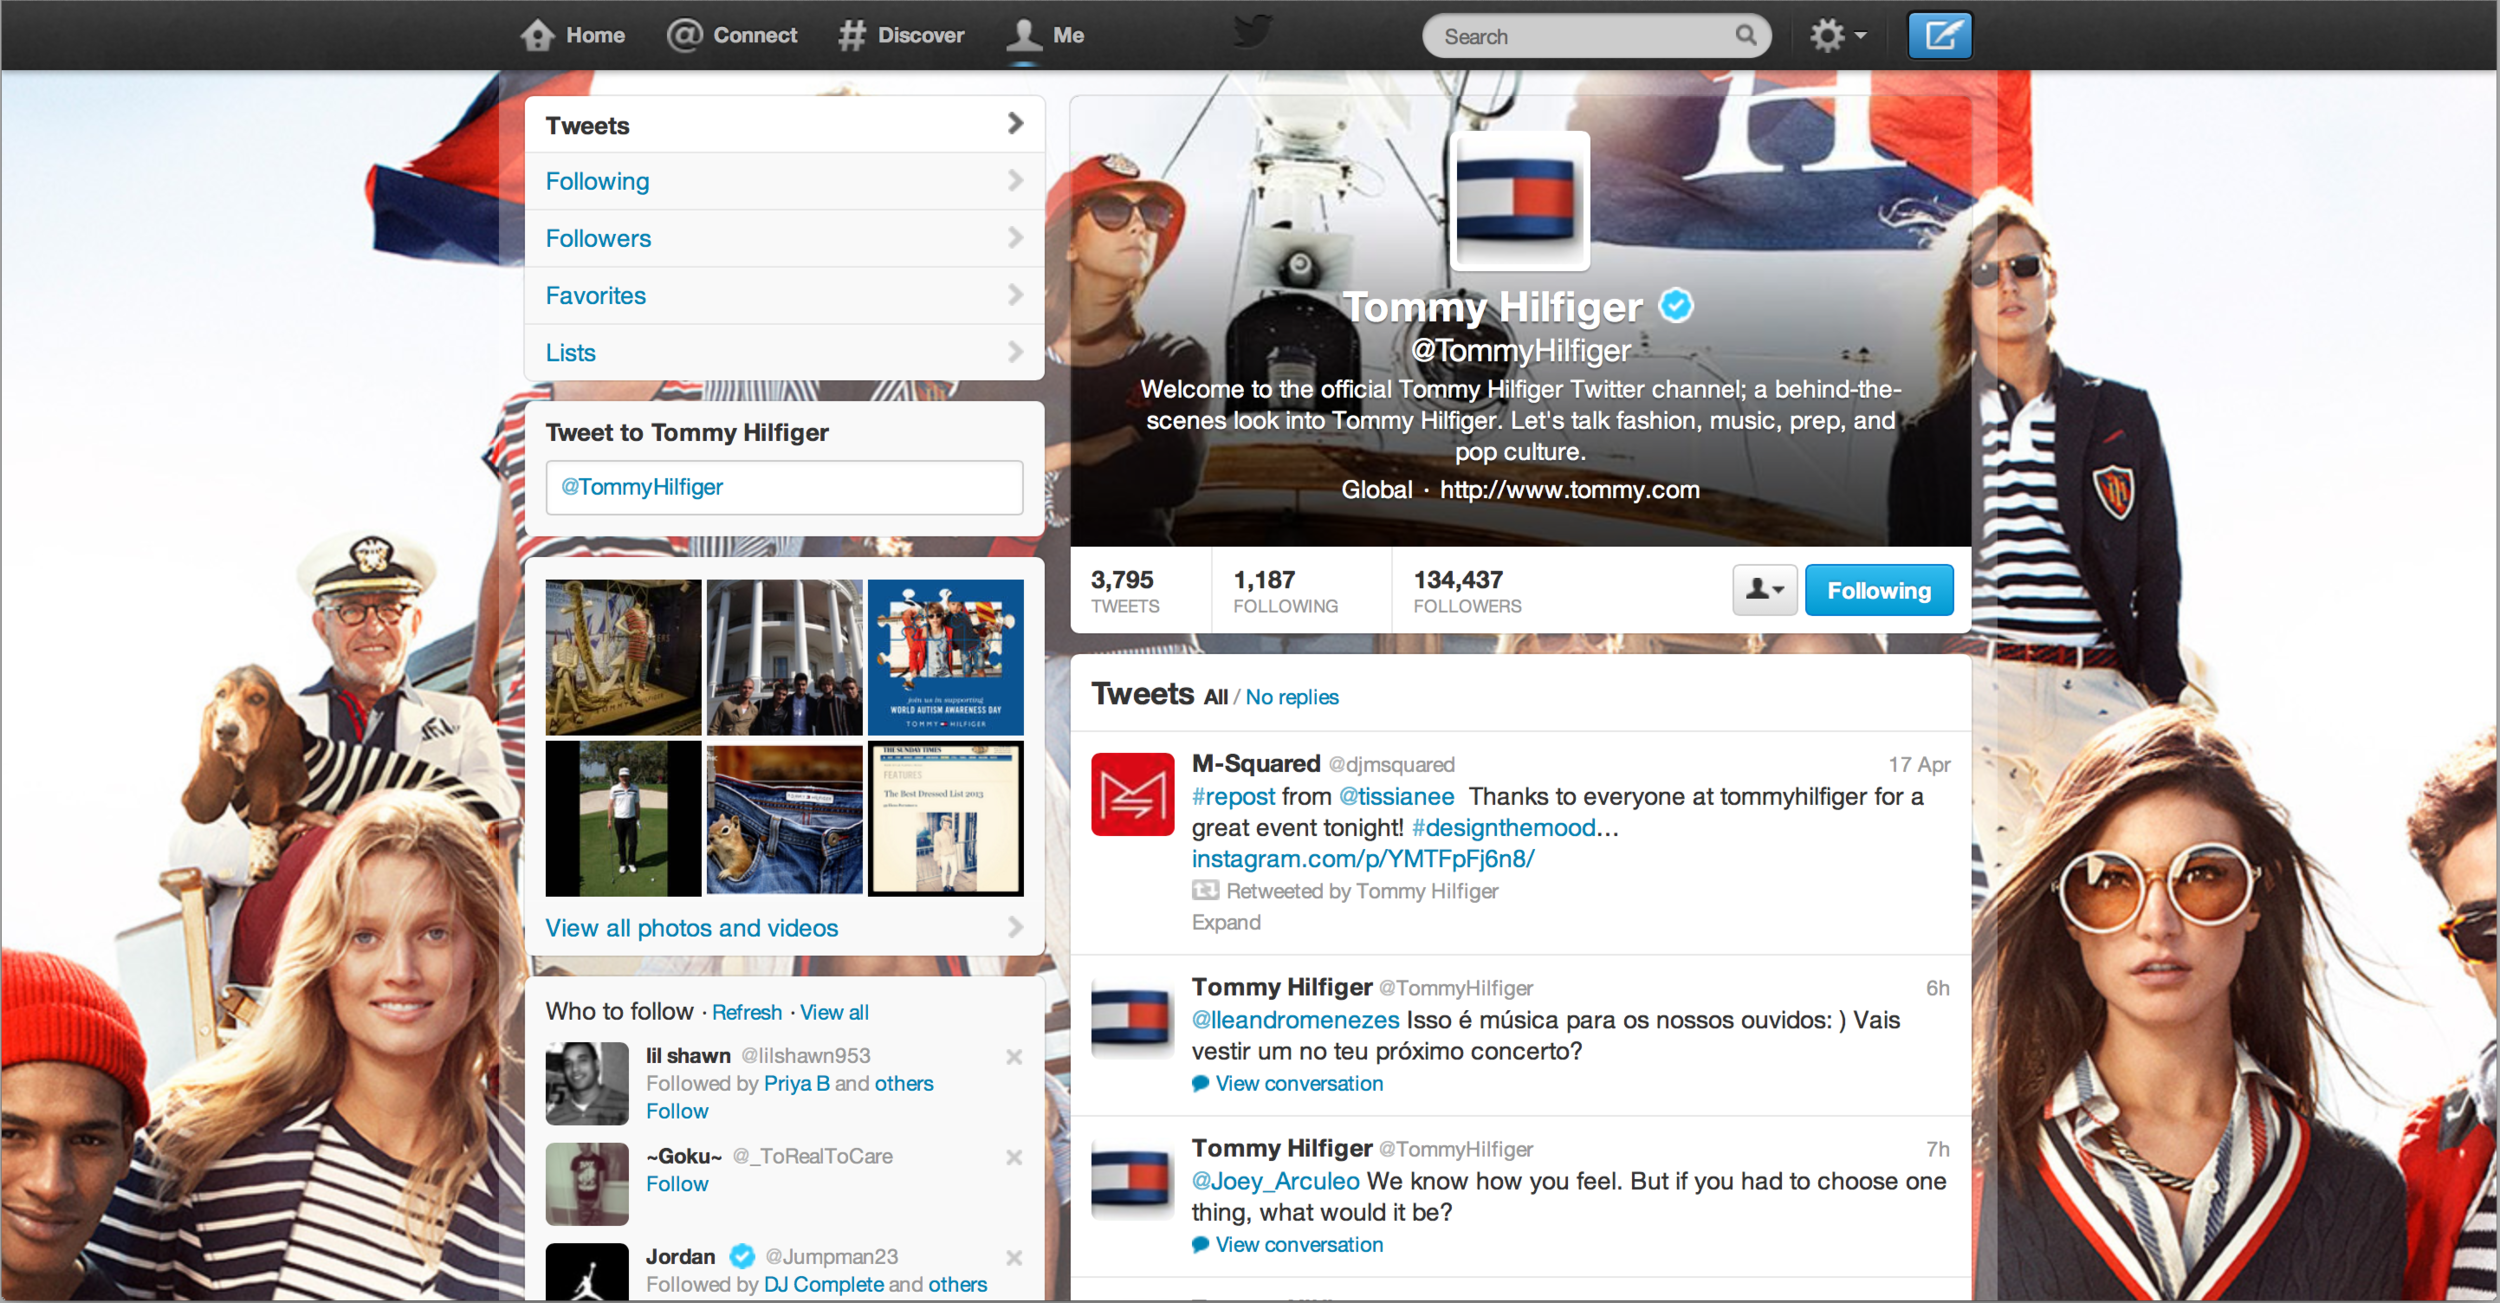 Tommy Hilfiger ReTweets M-Squared on Twitter!